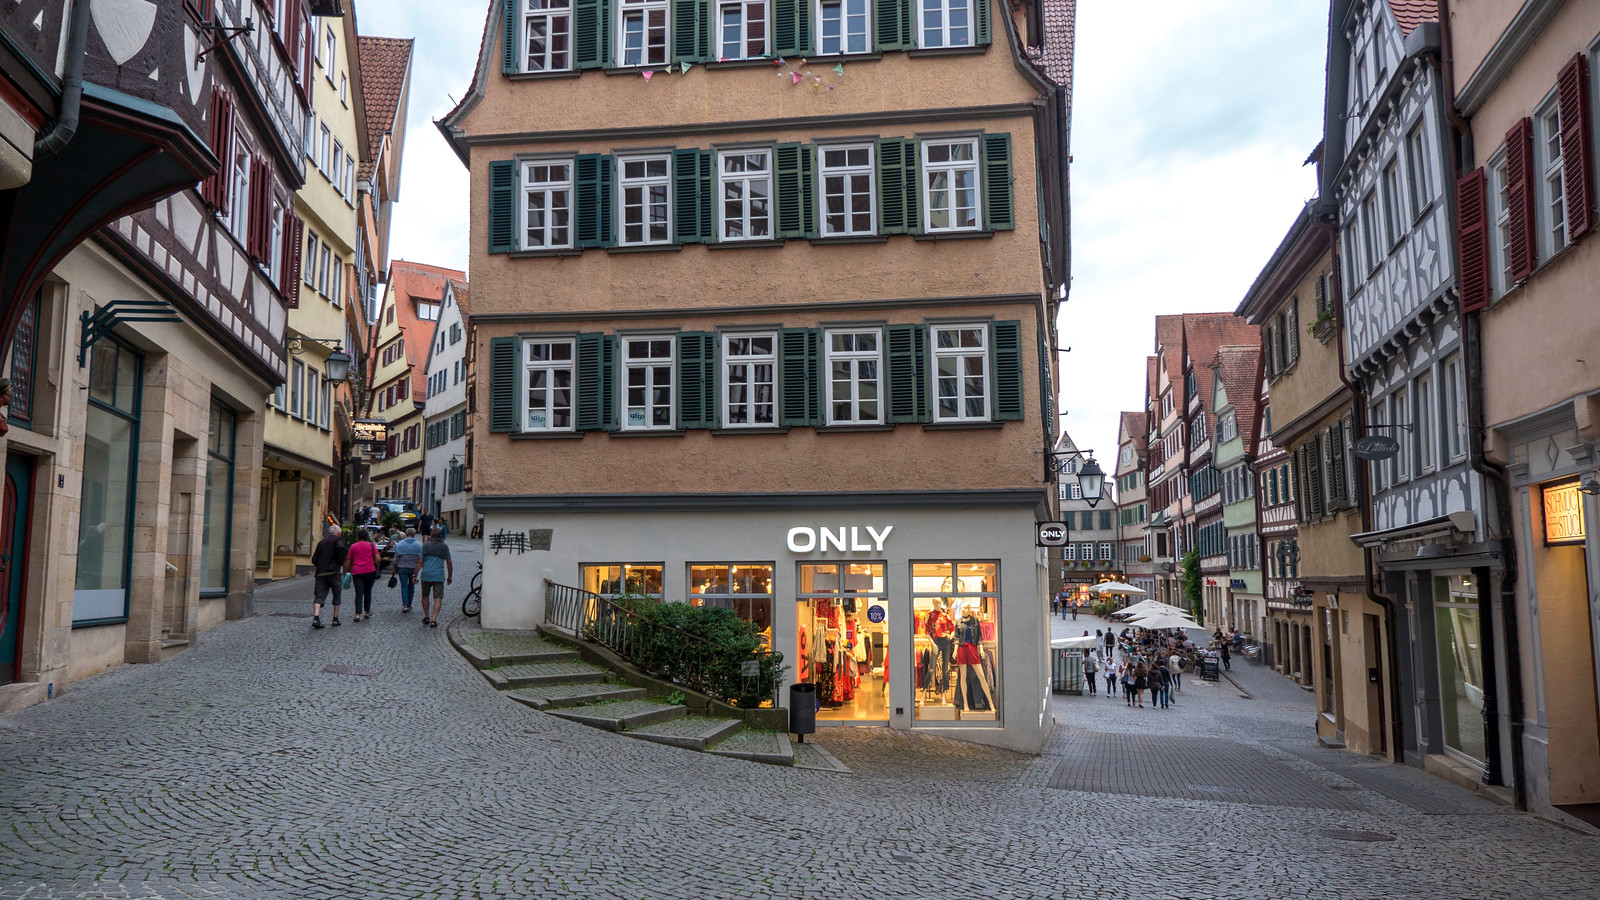 Shopping in Tubingen. Things to do in Tubingen Germany.